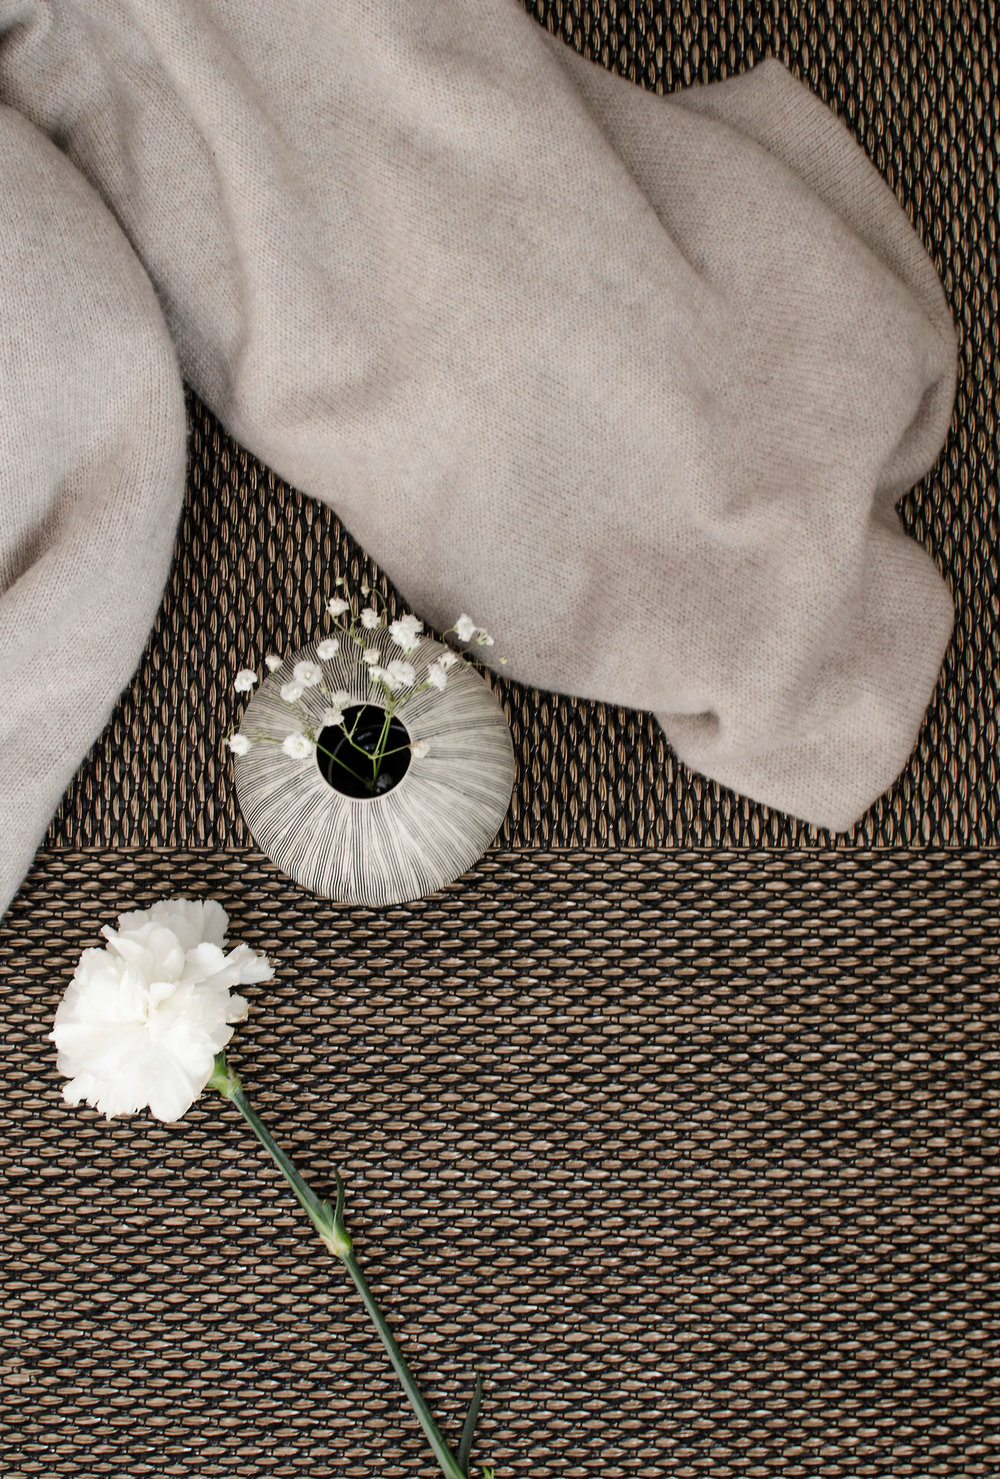 Quality woven vinyl floor coverings from Finland